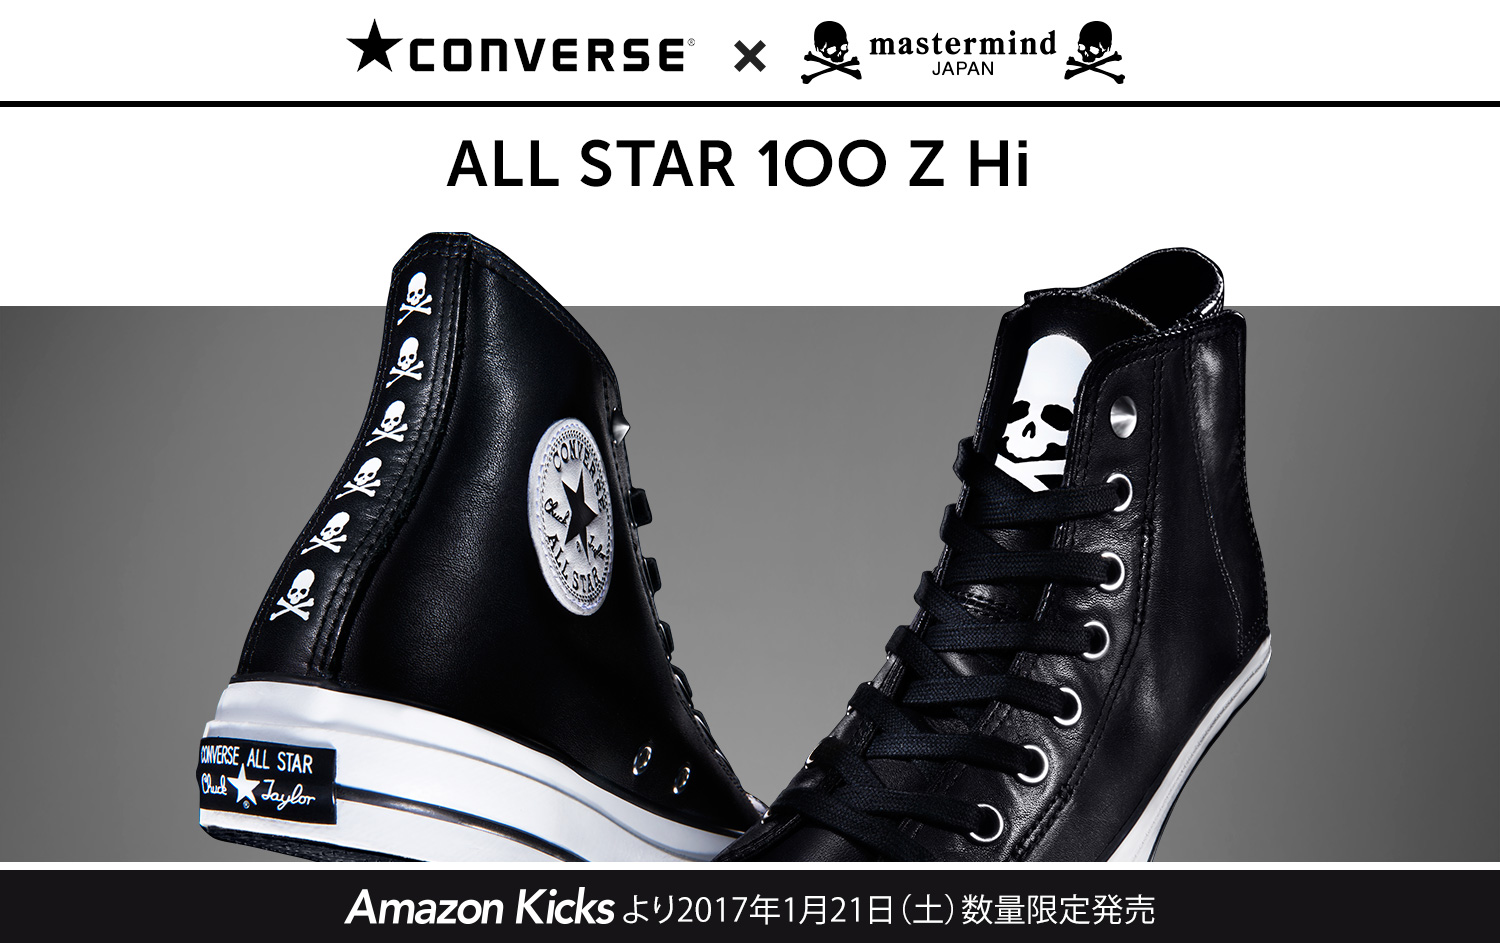 52295ced0b1 Converse x mastermind JAPAN / ALL STAR 100 本日発売 | SHOES MASTER